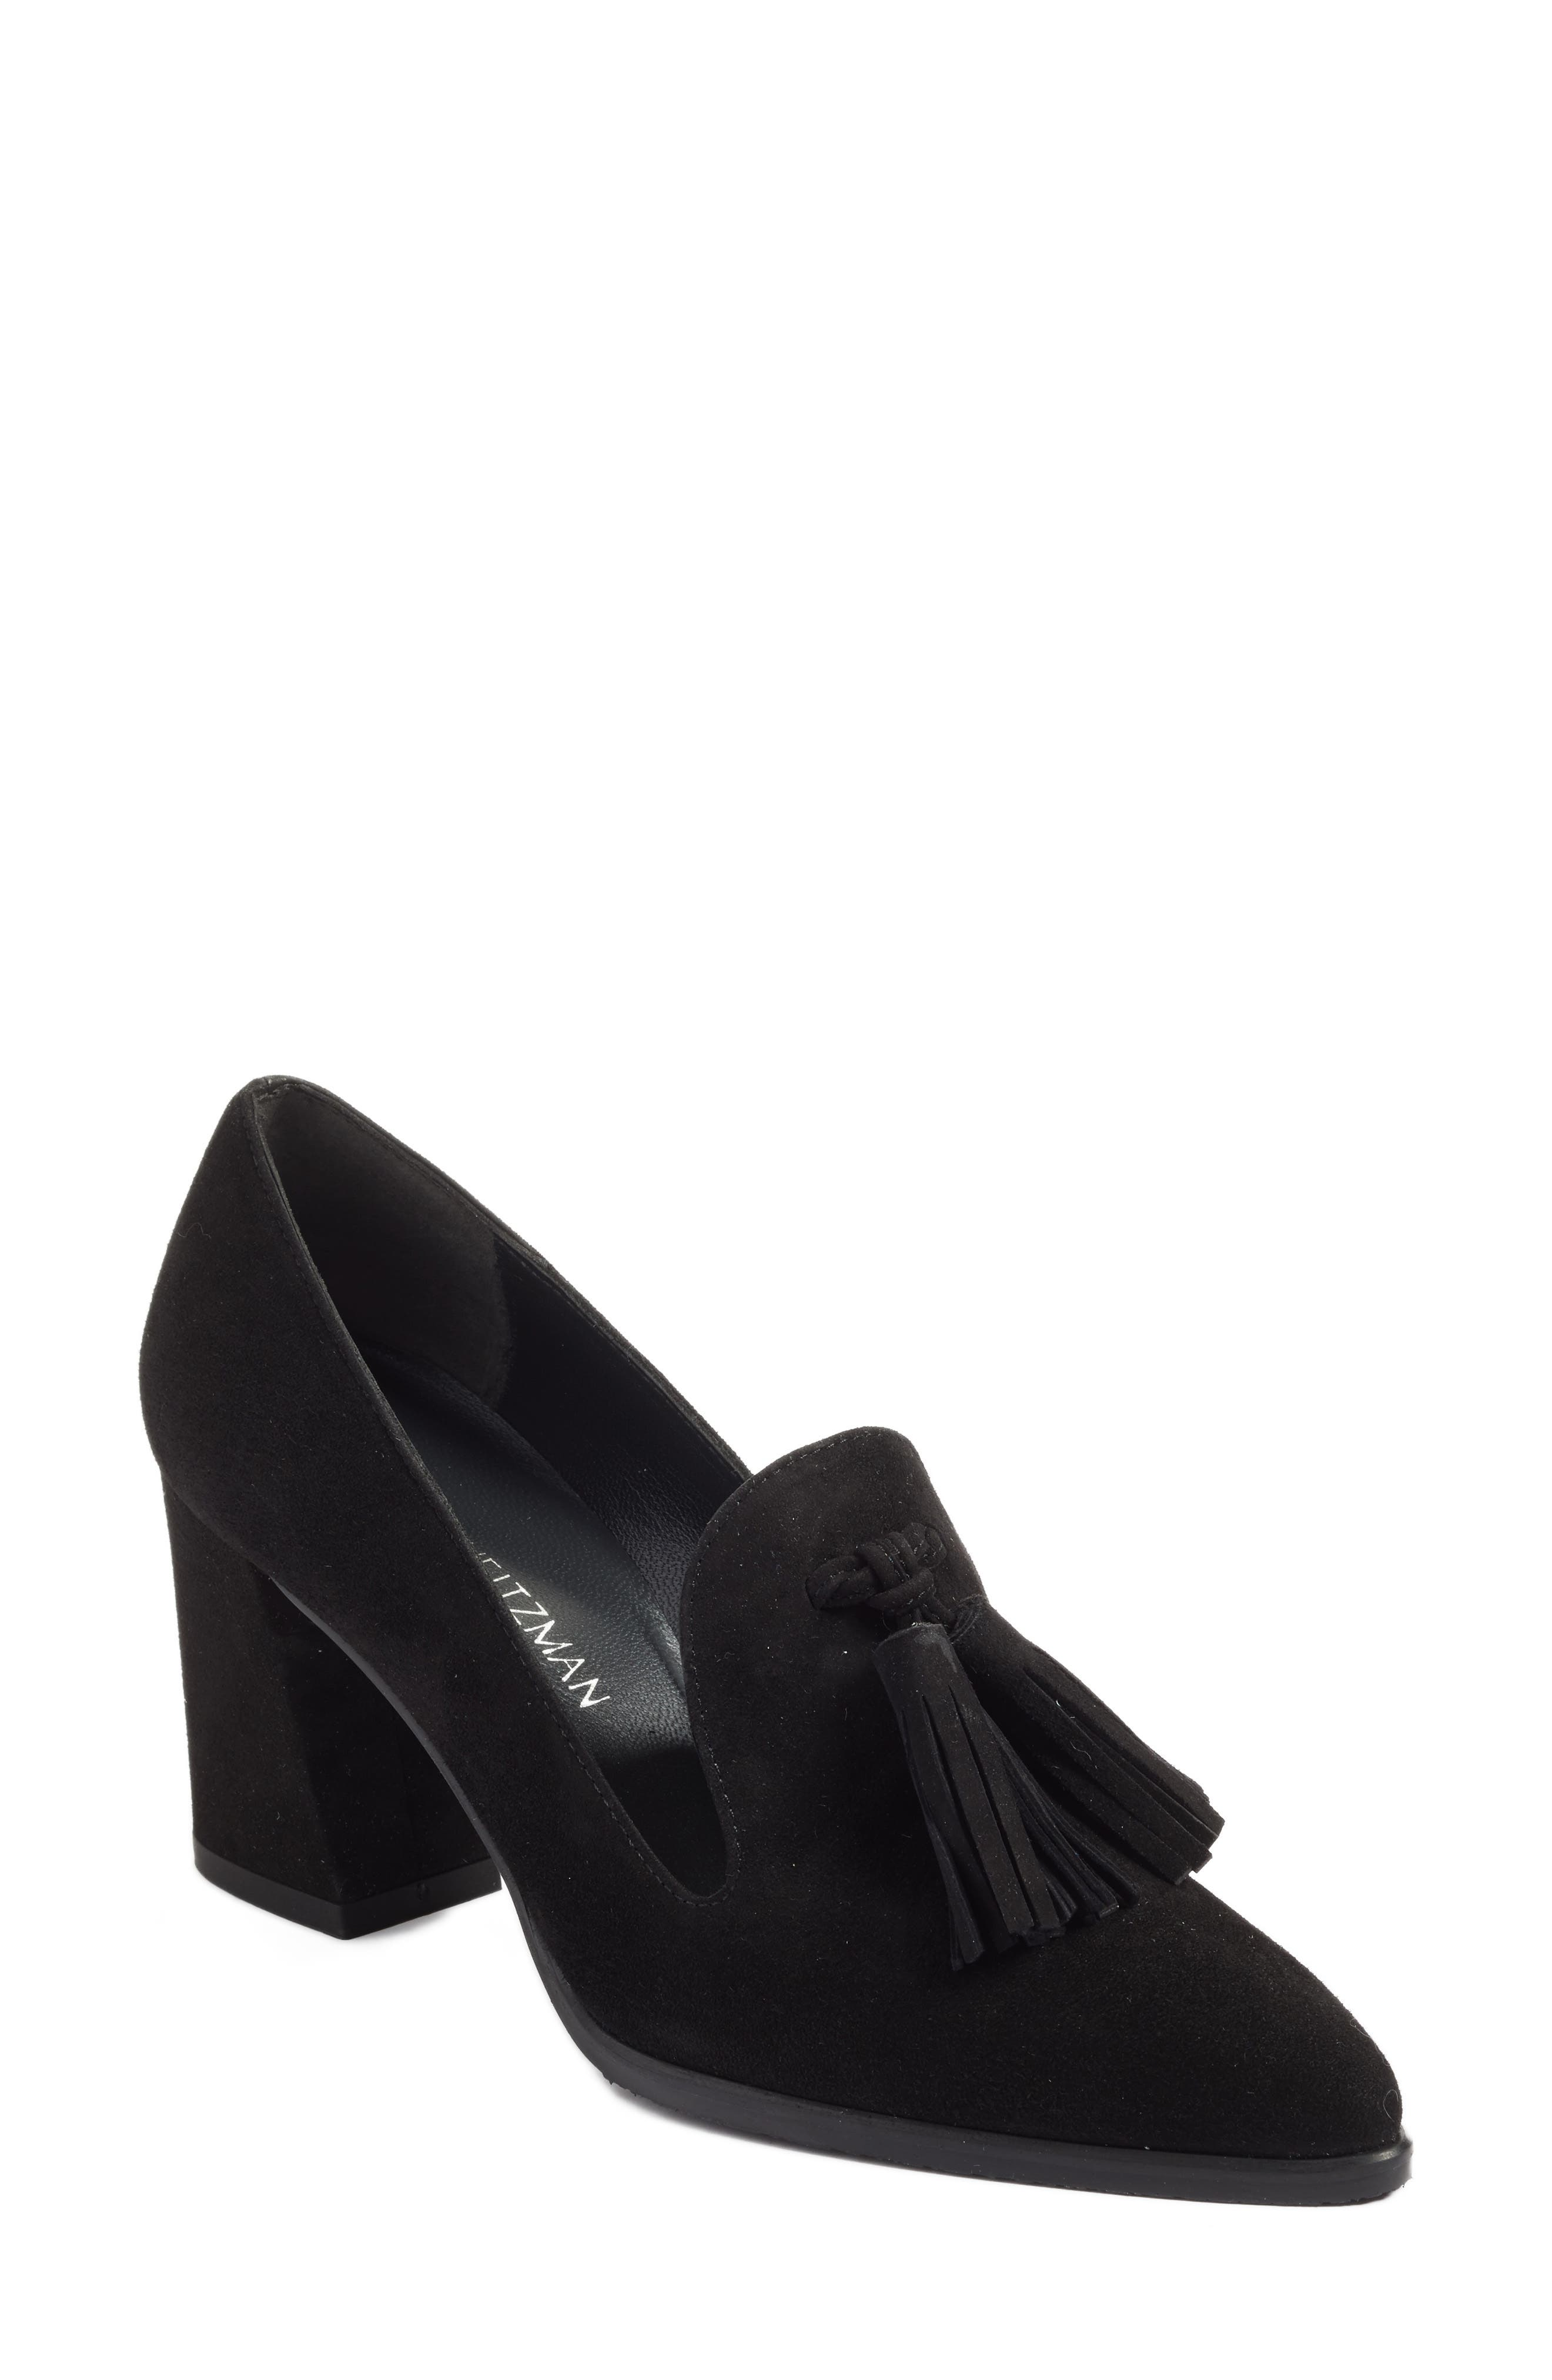 Murphy Tassel Pump,                             Main thumbnail 1, color,                             002